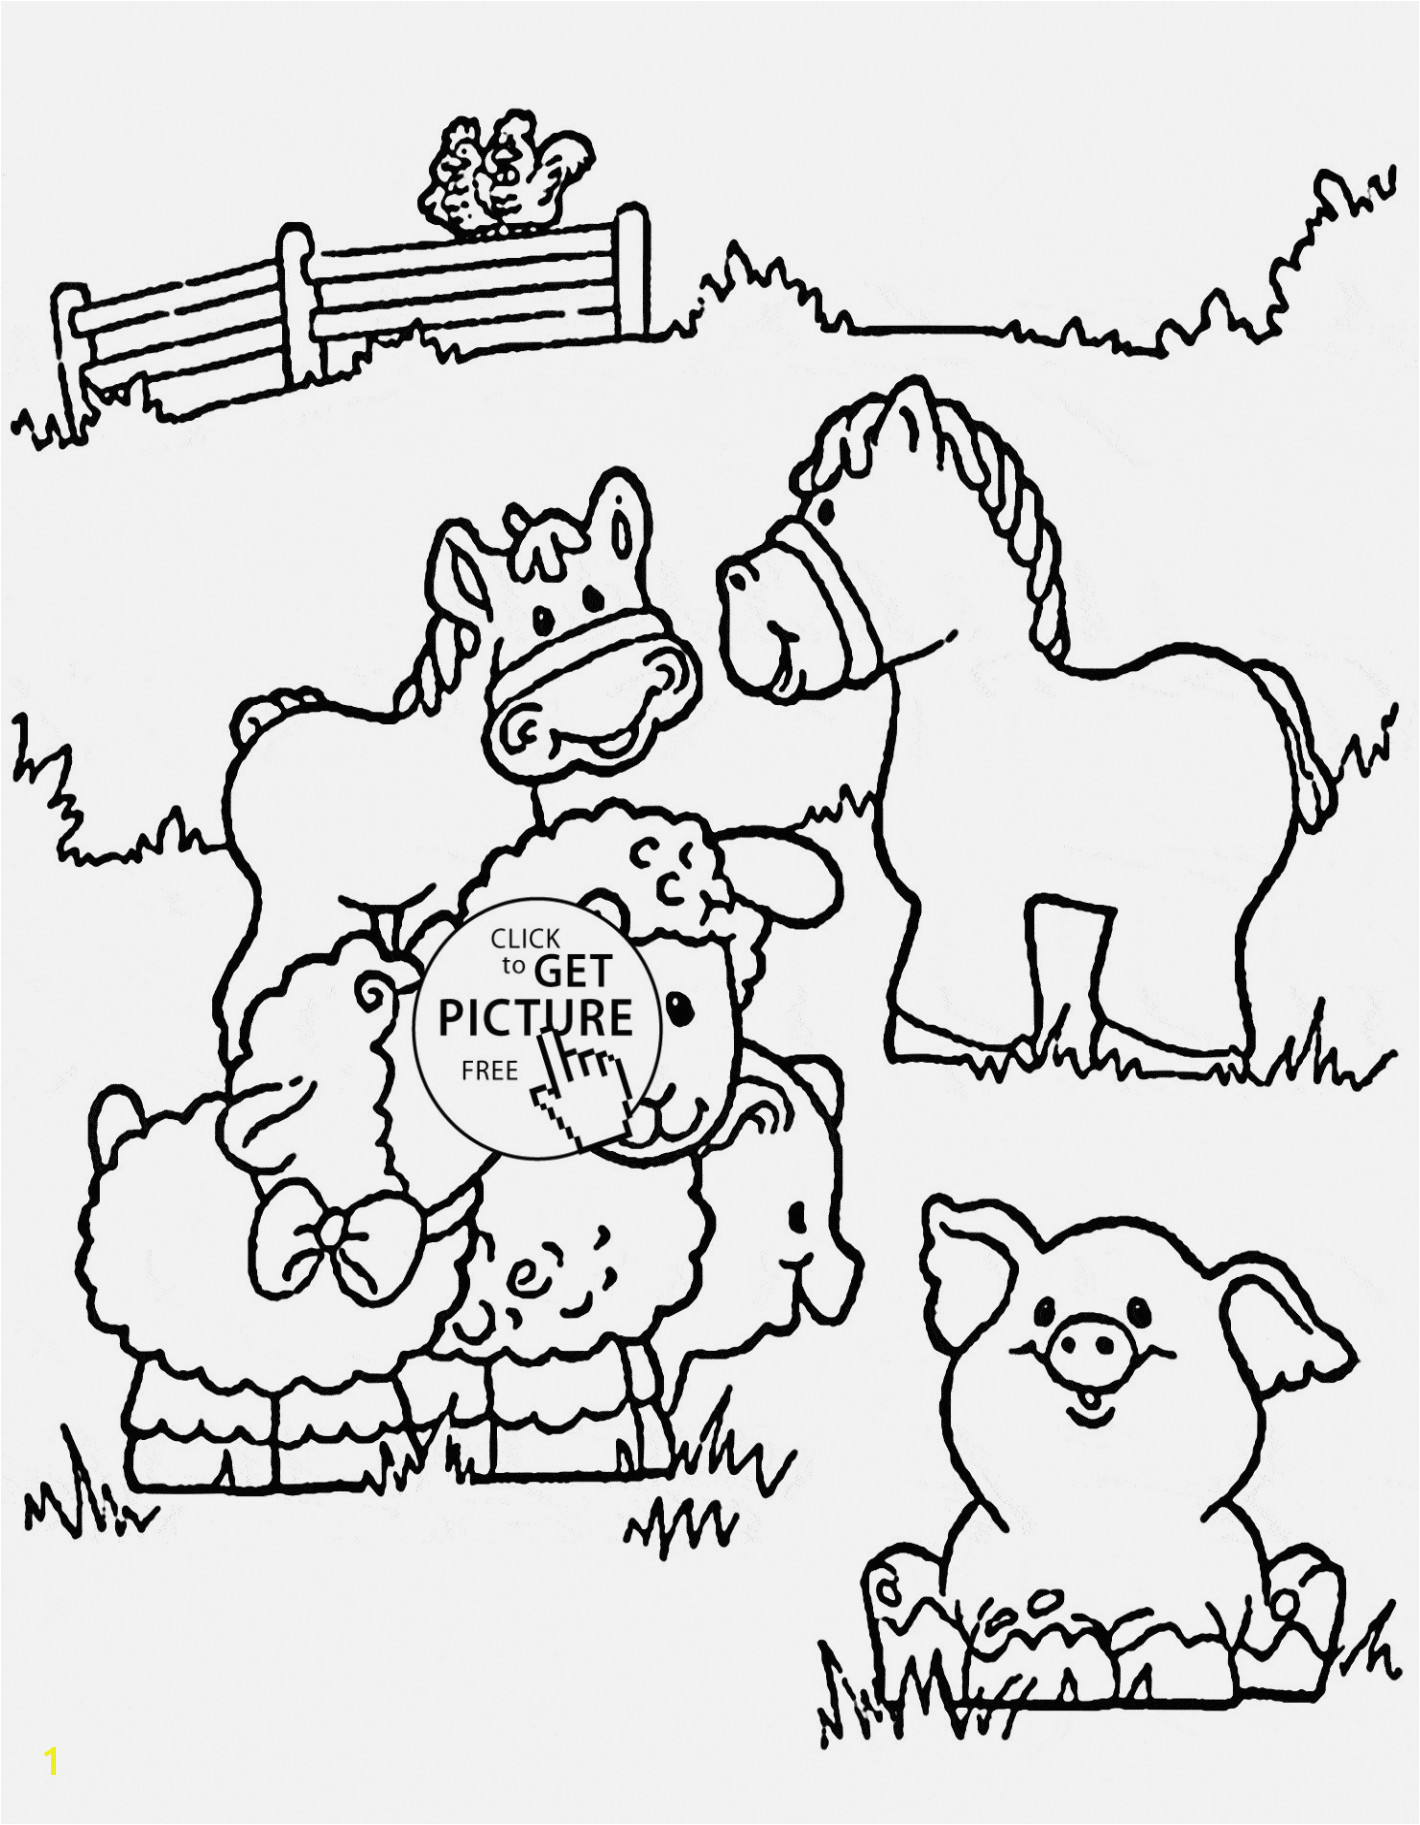 Puppy Coloring Pages Parrot Coloring Pages Free Coloring Pages Elegant Crayola Pages 0d